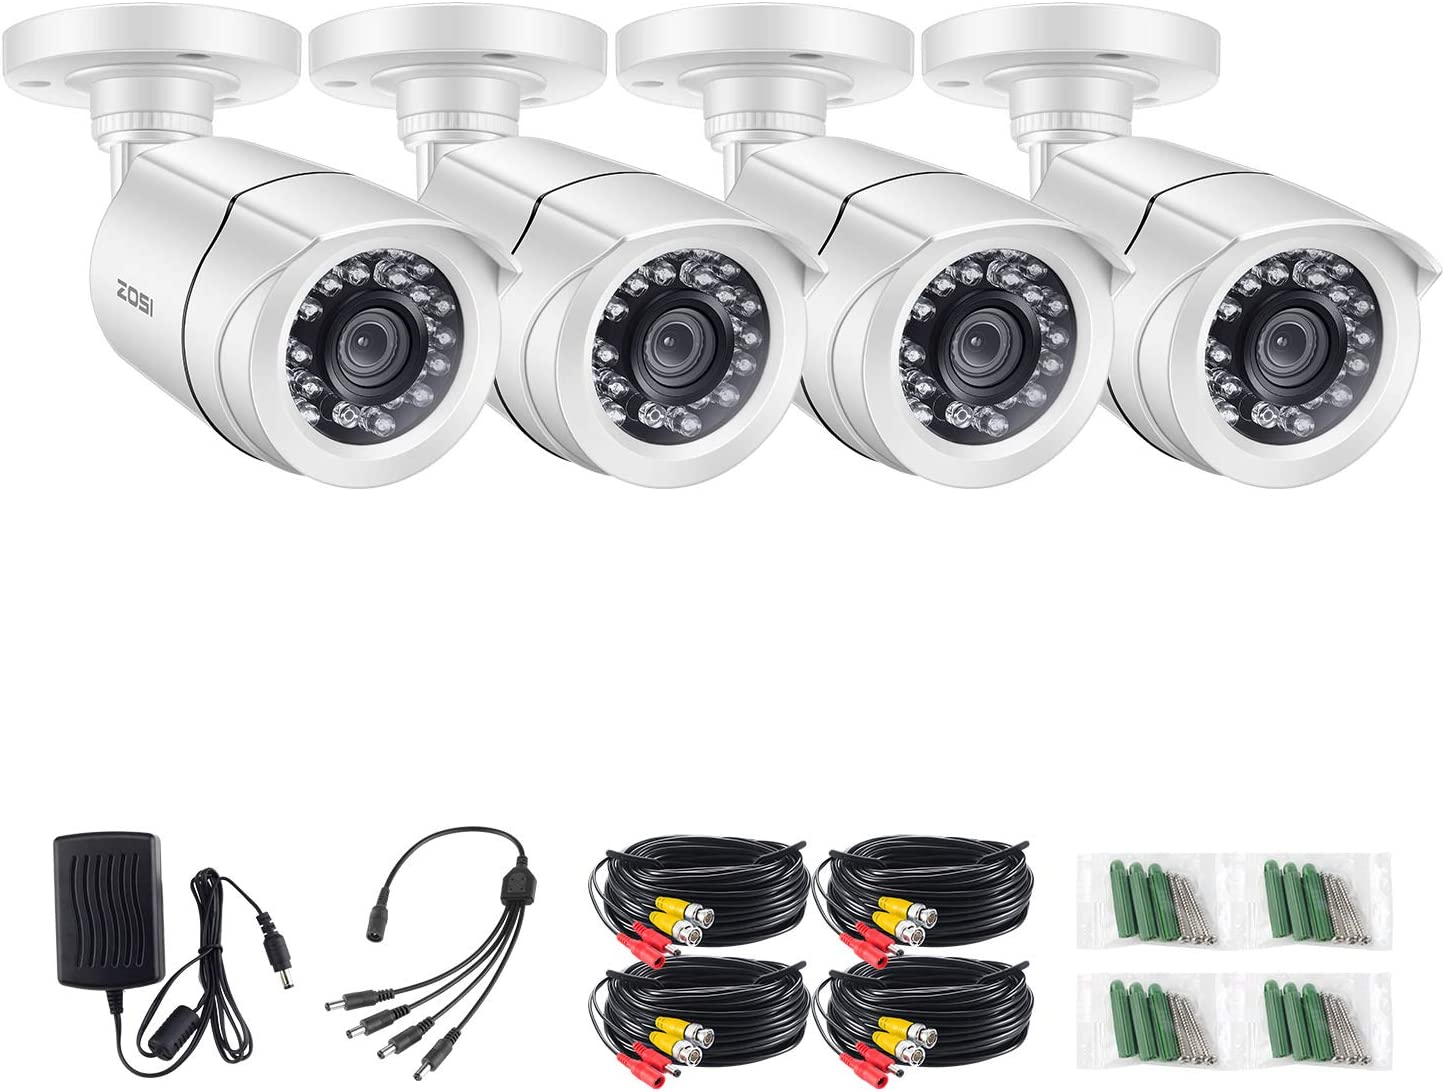 ZOSI 4 Pack 720p Bullet Security Cameras Hybrid 4-in-1 HD-CVI TVI AHD 960H Analog CVBS ,1280TVL Day Night Weatherproof Indoor Outdoor Bullet Camera HD, Night Vision Up to 65FT 20M